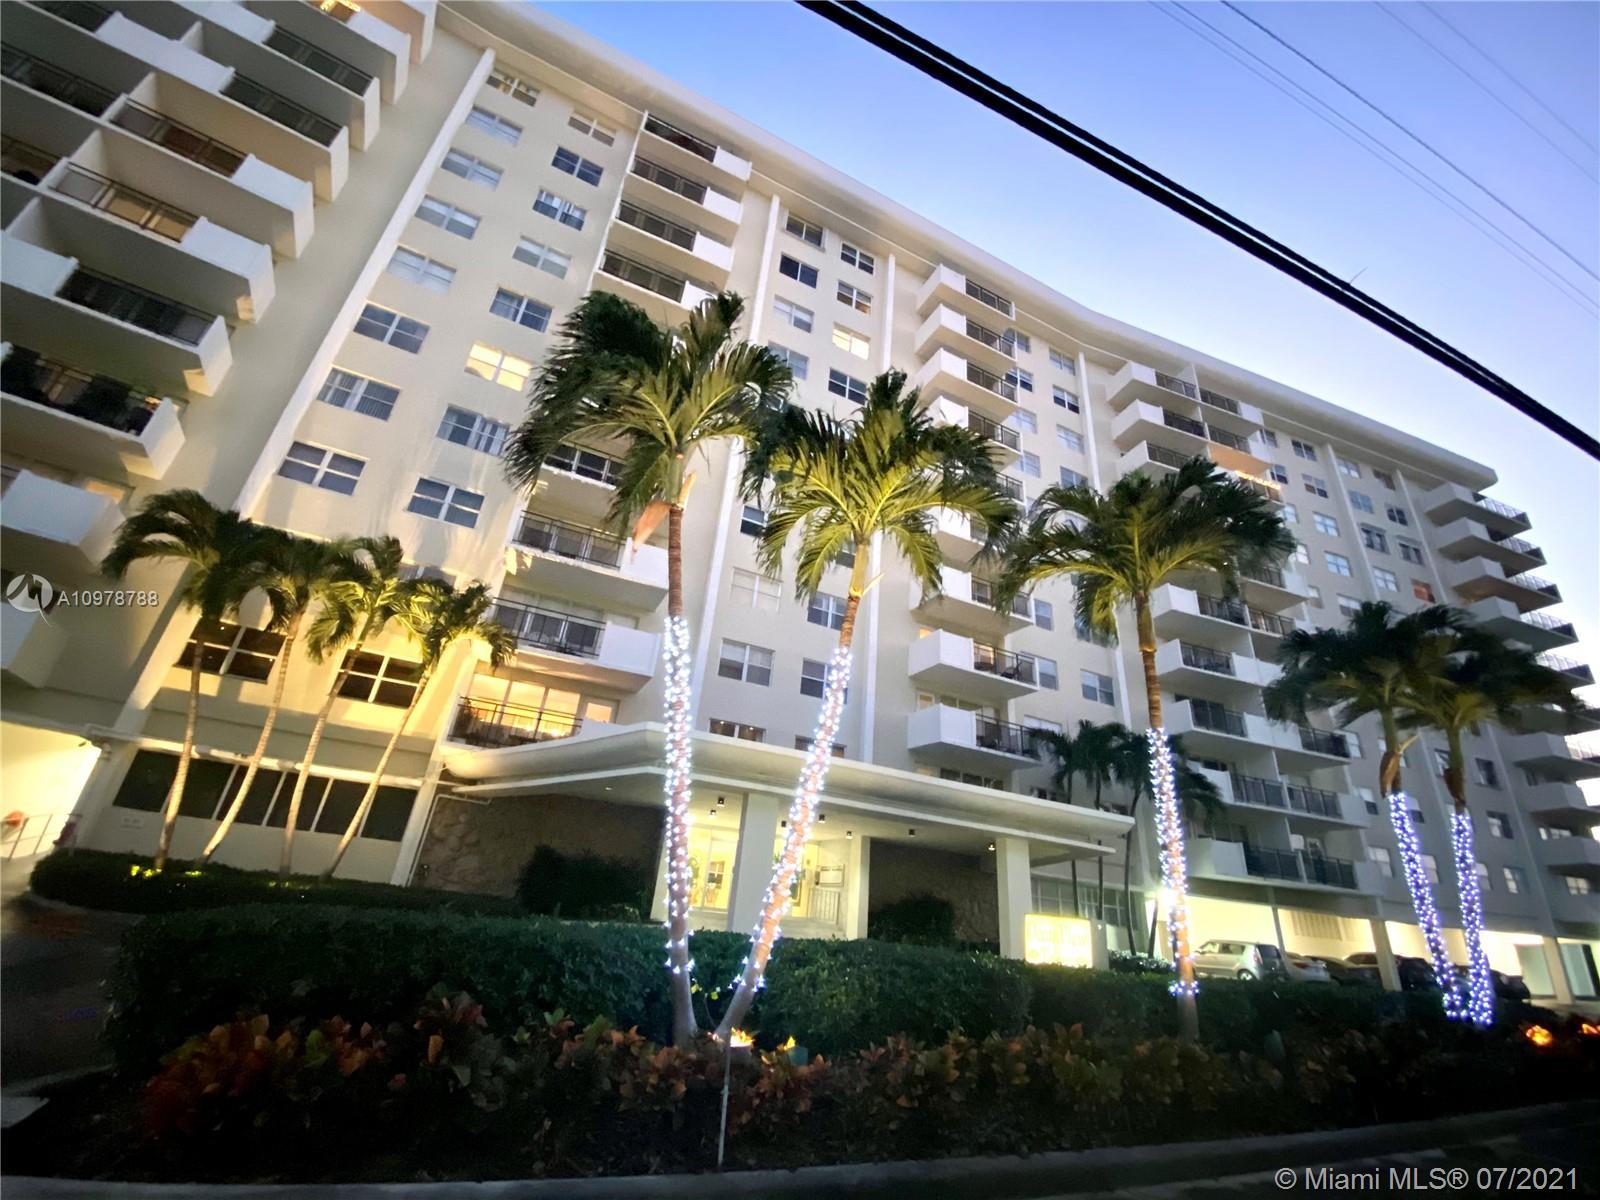 REDUCED TO SALE! Spacious corner unit of 1,500 sqf. 2/2 wraparound balcony, COMPLETELY RENOVATED, NO